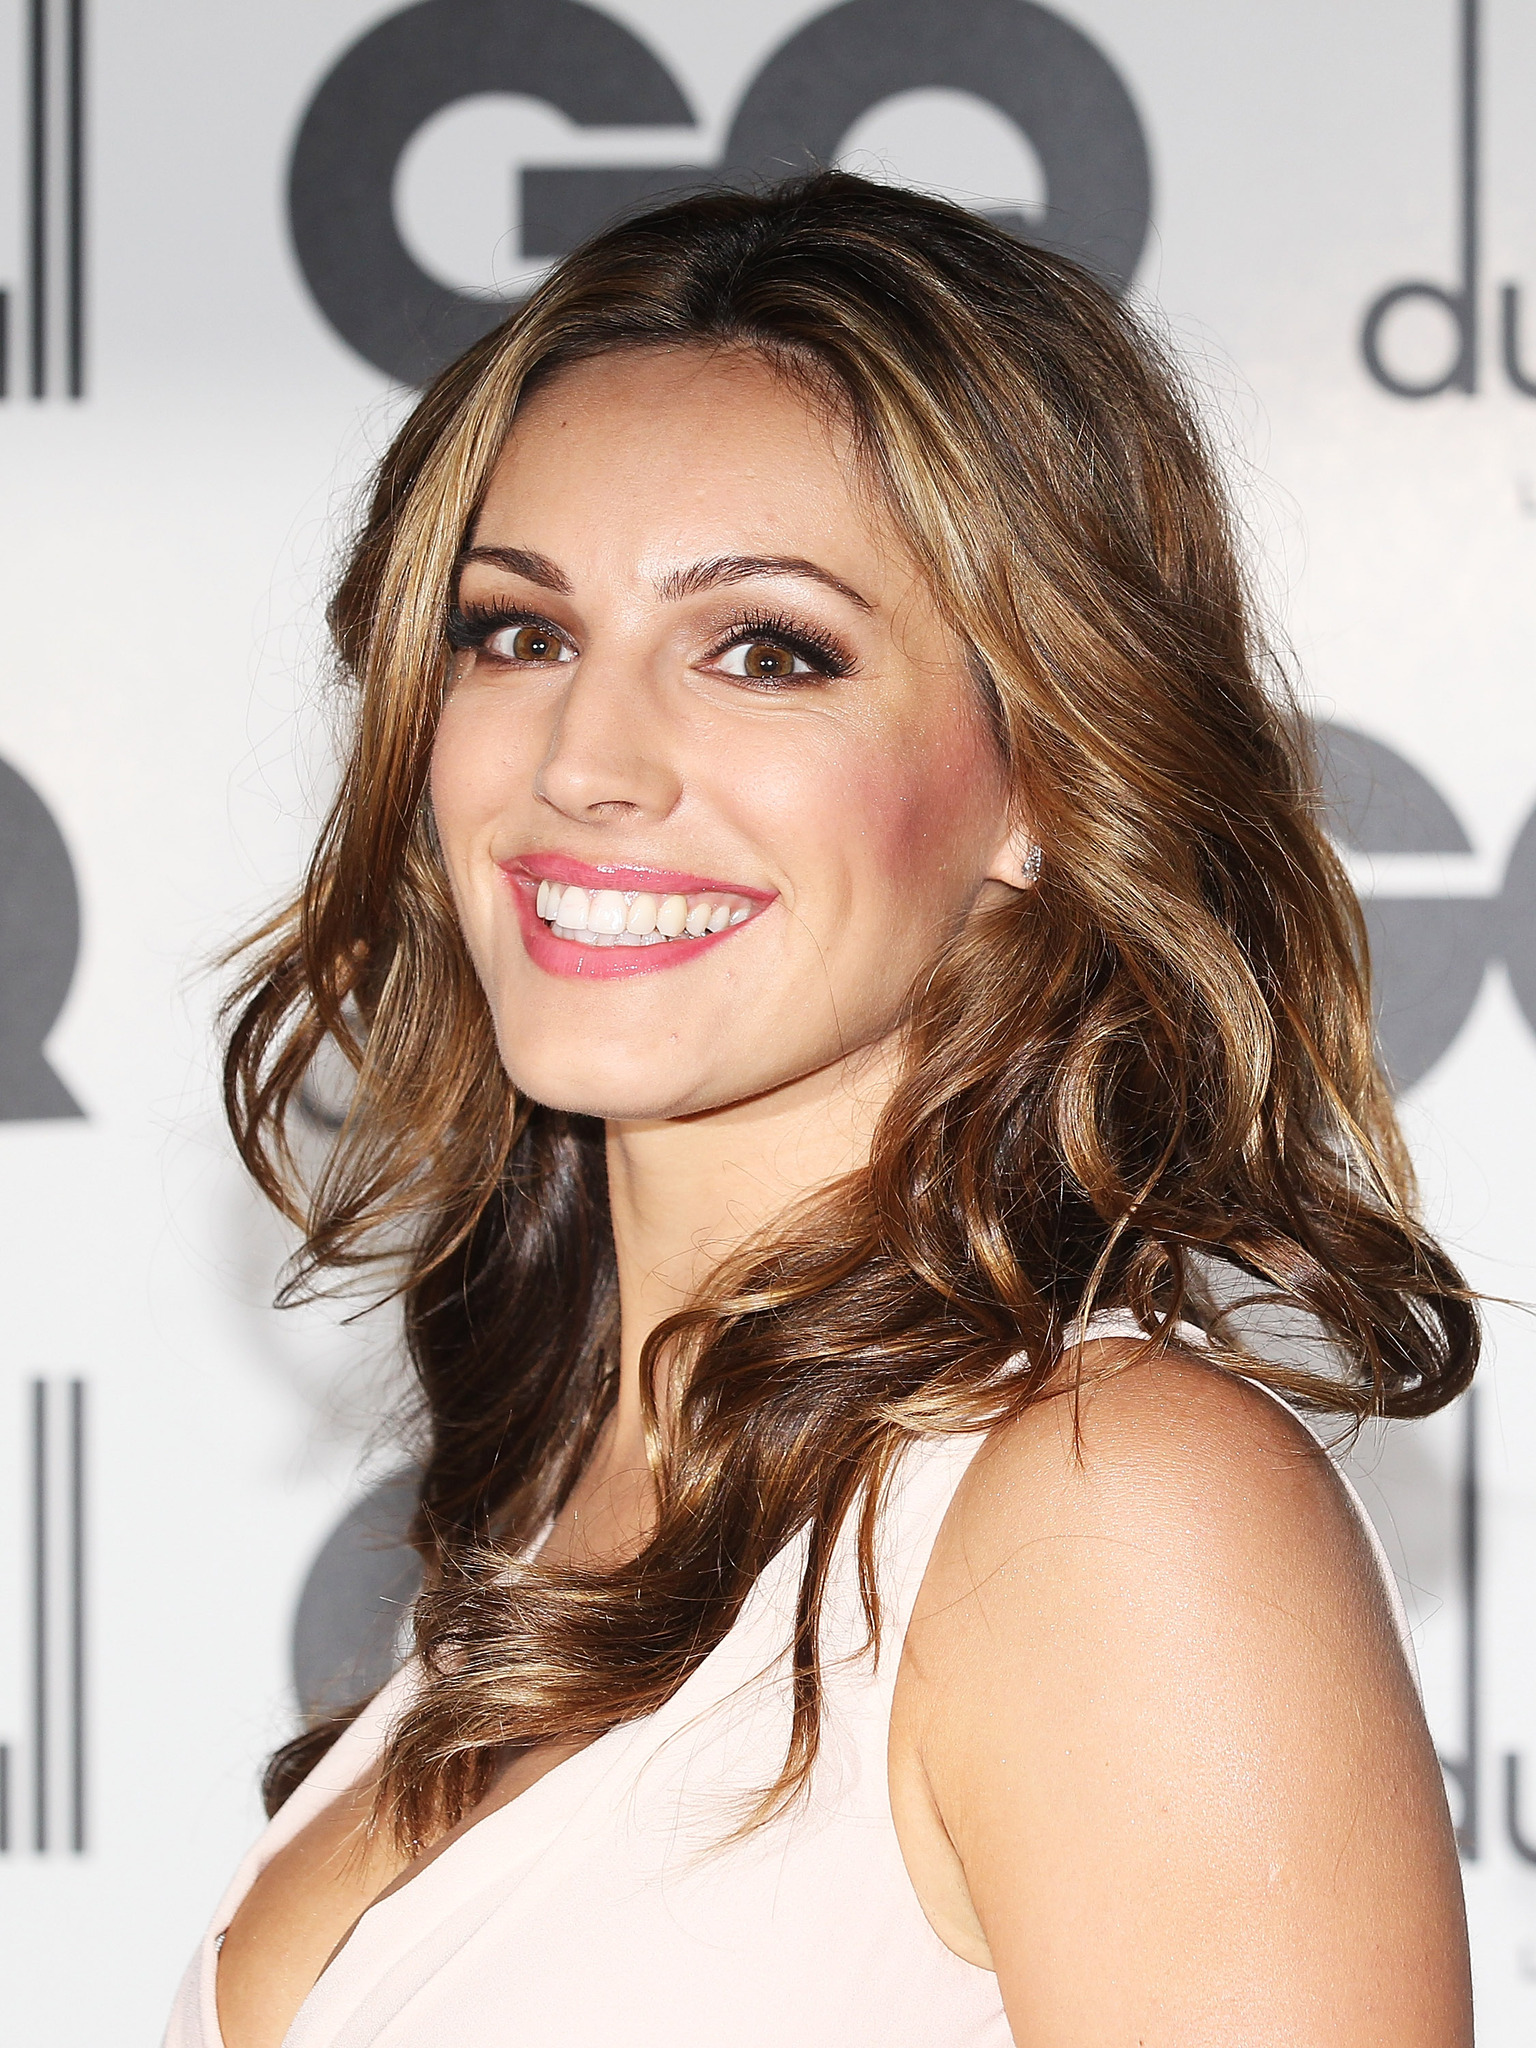 Communication on this topic: Ashley Cabrera (b. 2010), kelly-brook/